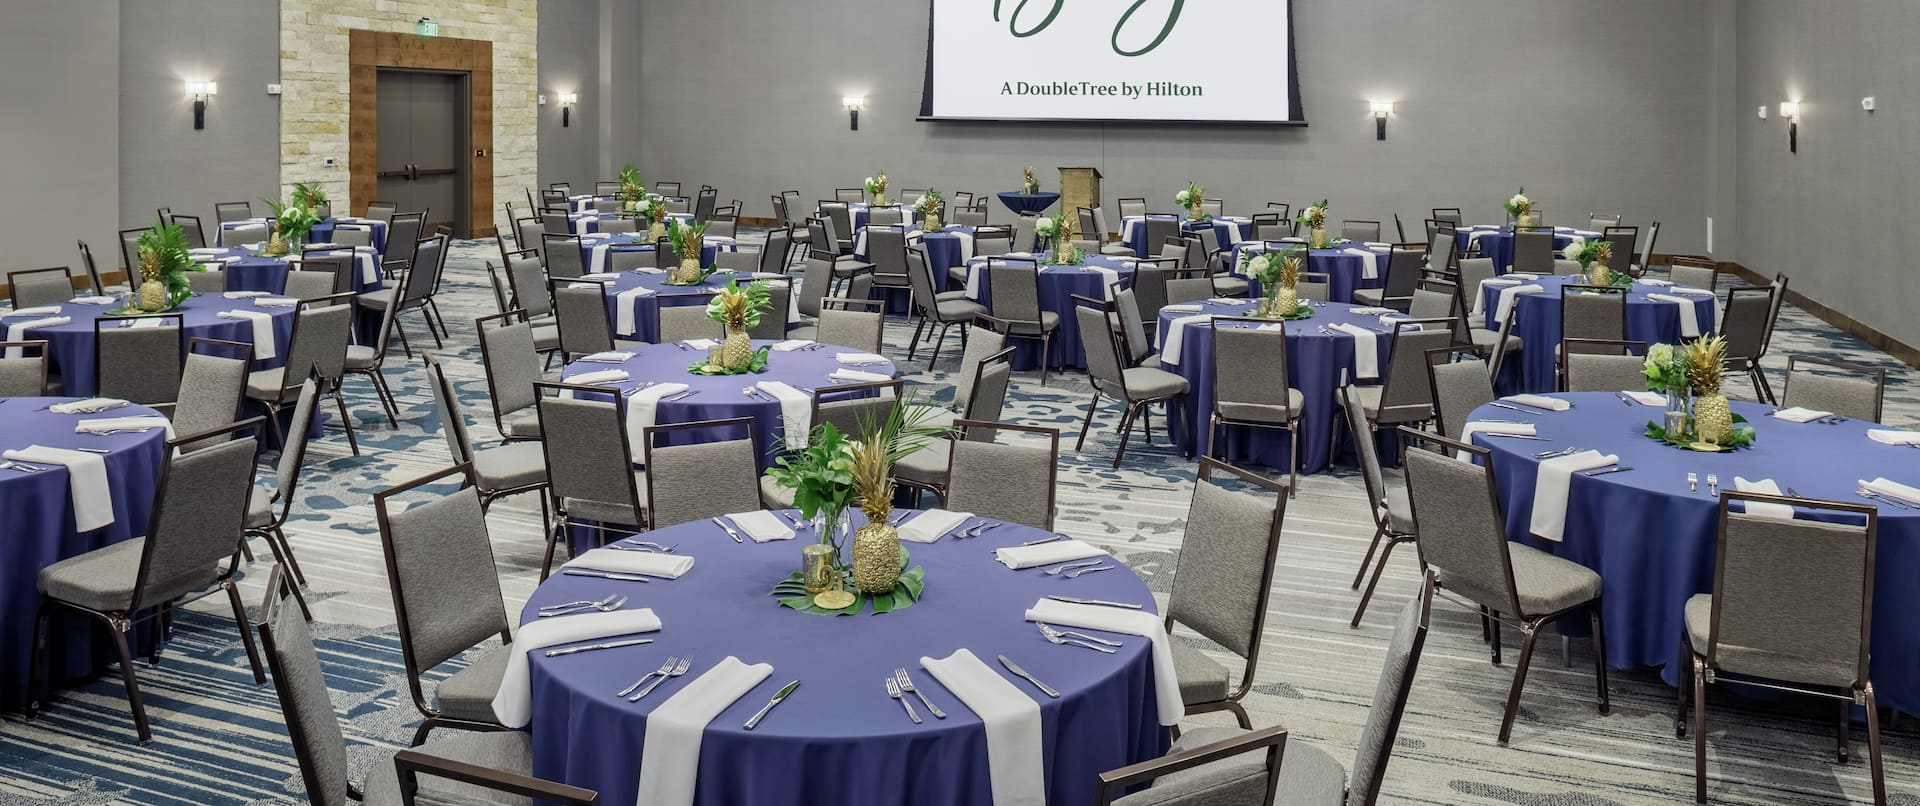 The Bevy Hotel features The Menger Ballroom with state of the art technology and elegant finishes